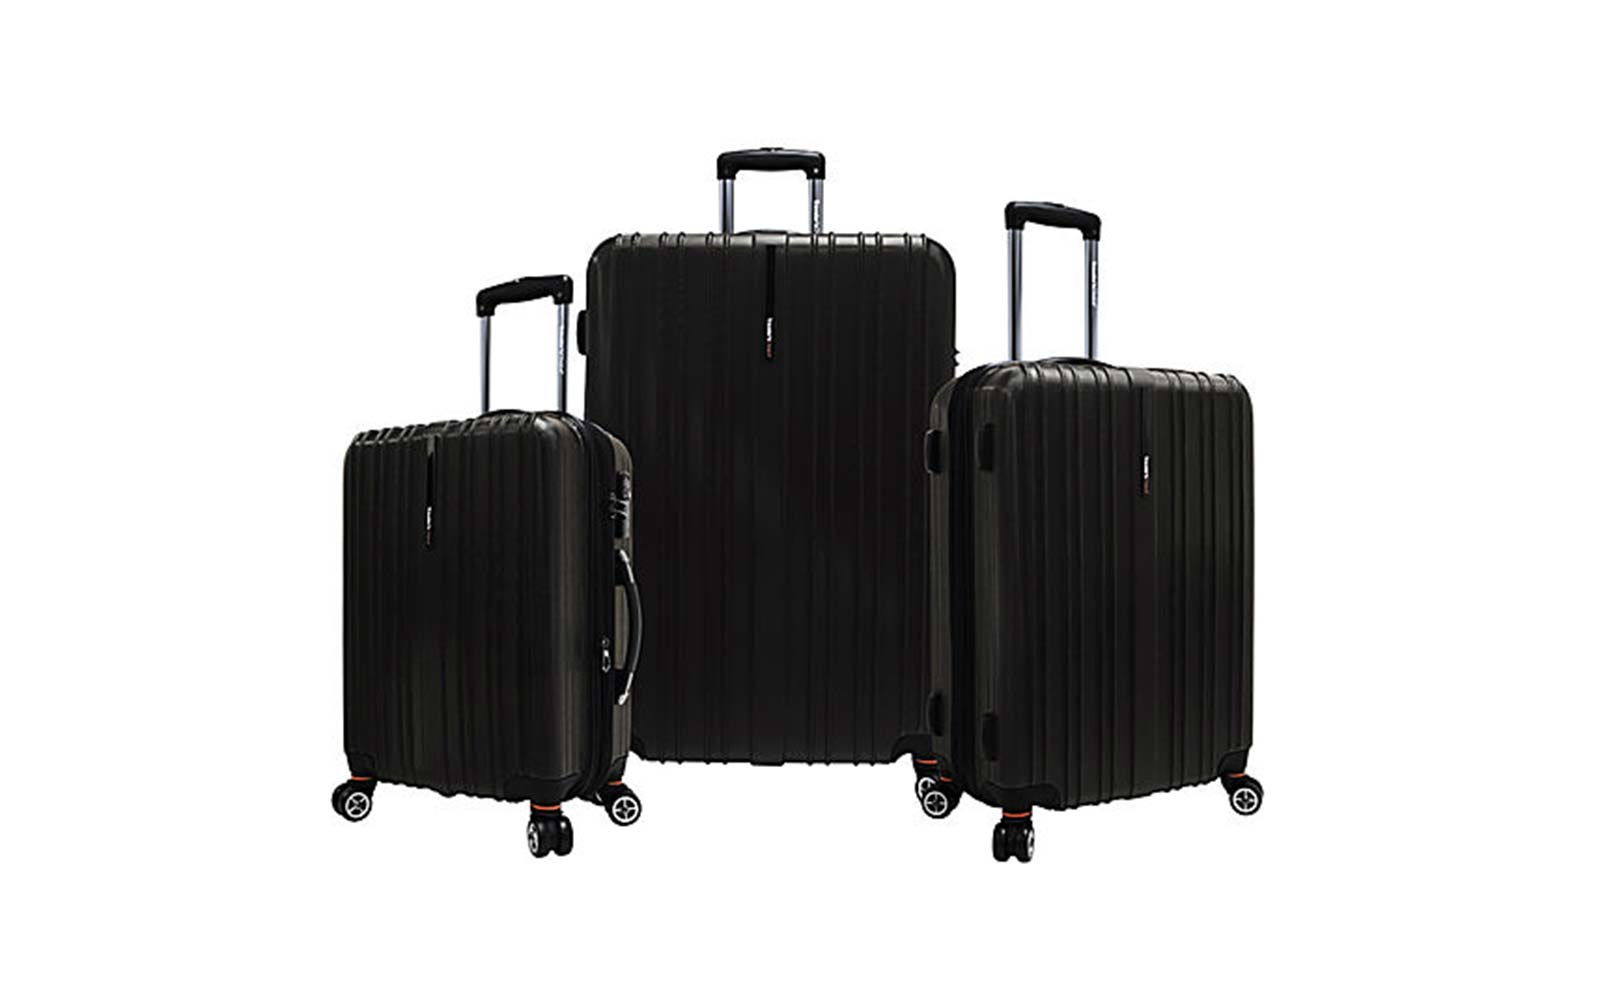 Traveler's Choice Tasmania 3-piece Expandable Hardside Spinner Luggage Set